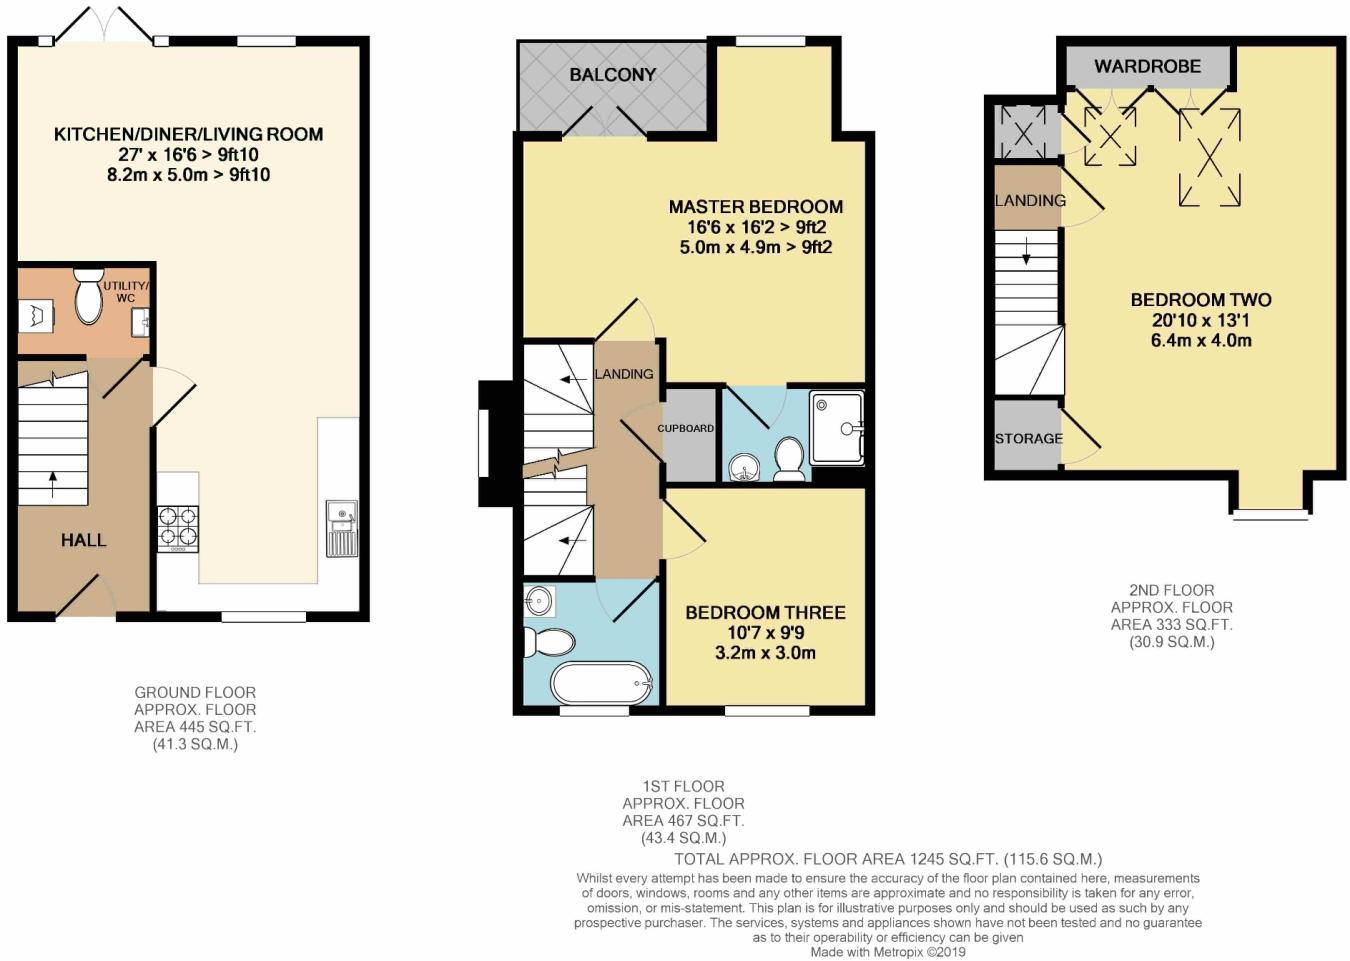 7 Young Mews Floorplan